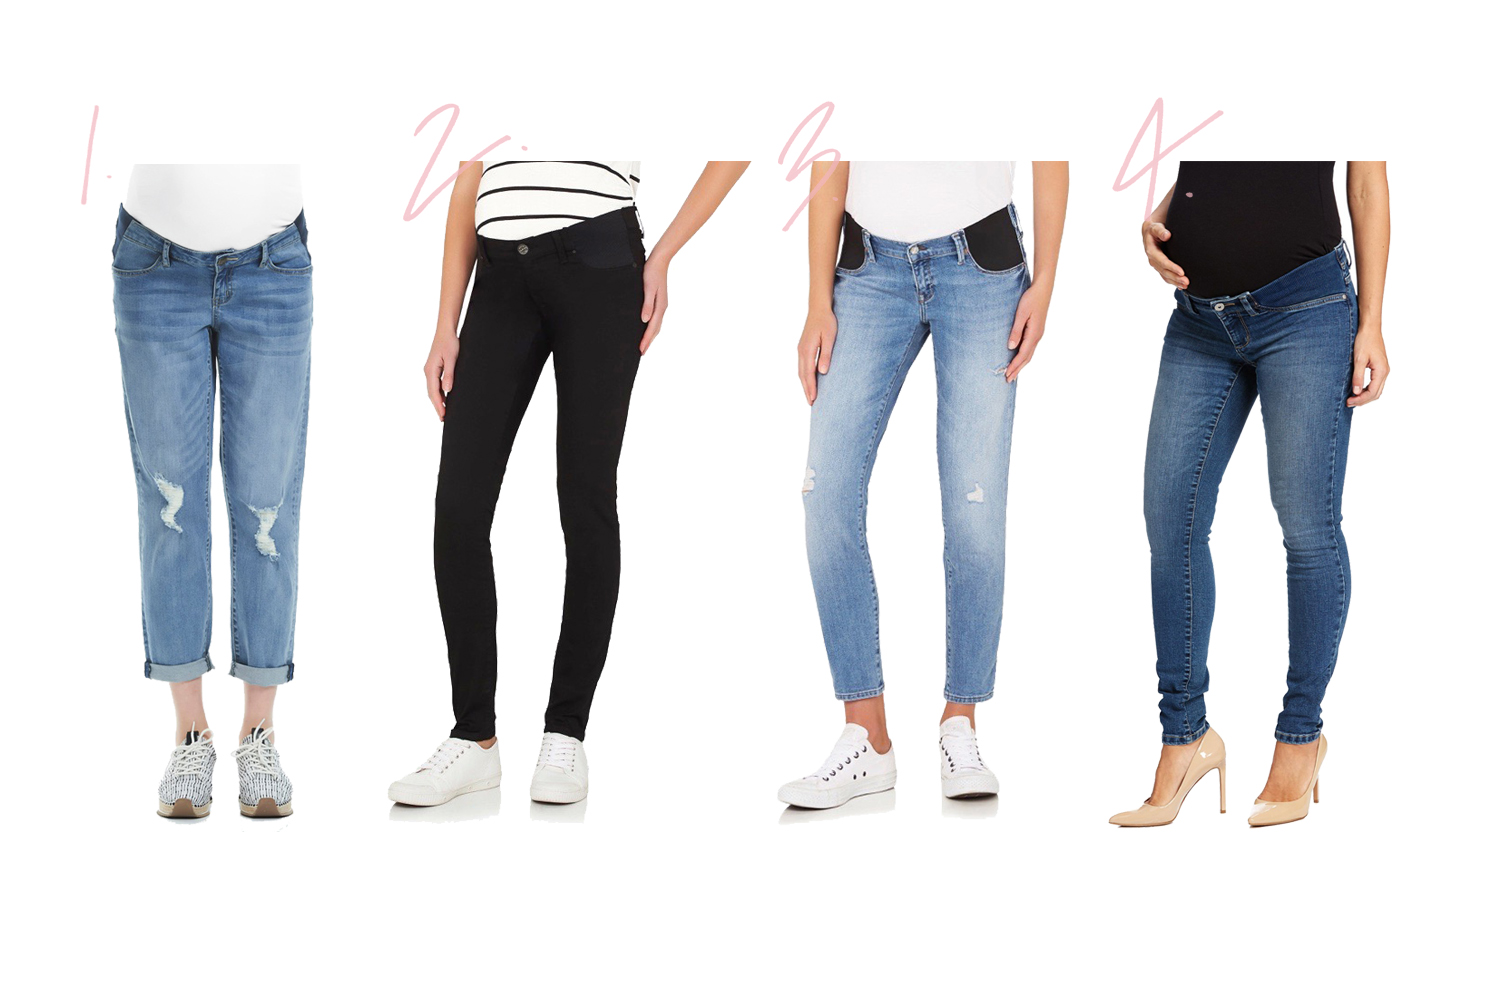 JEANS - Harley Quinn and co.jpg